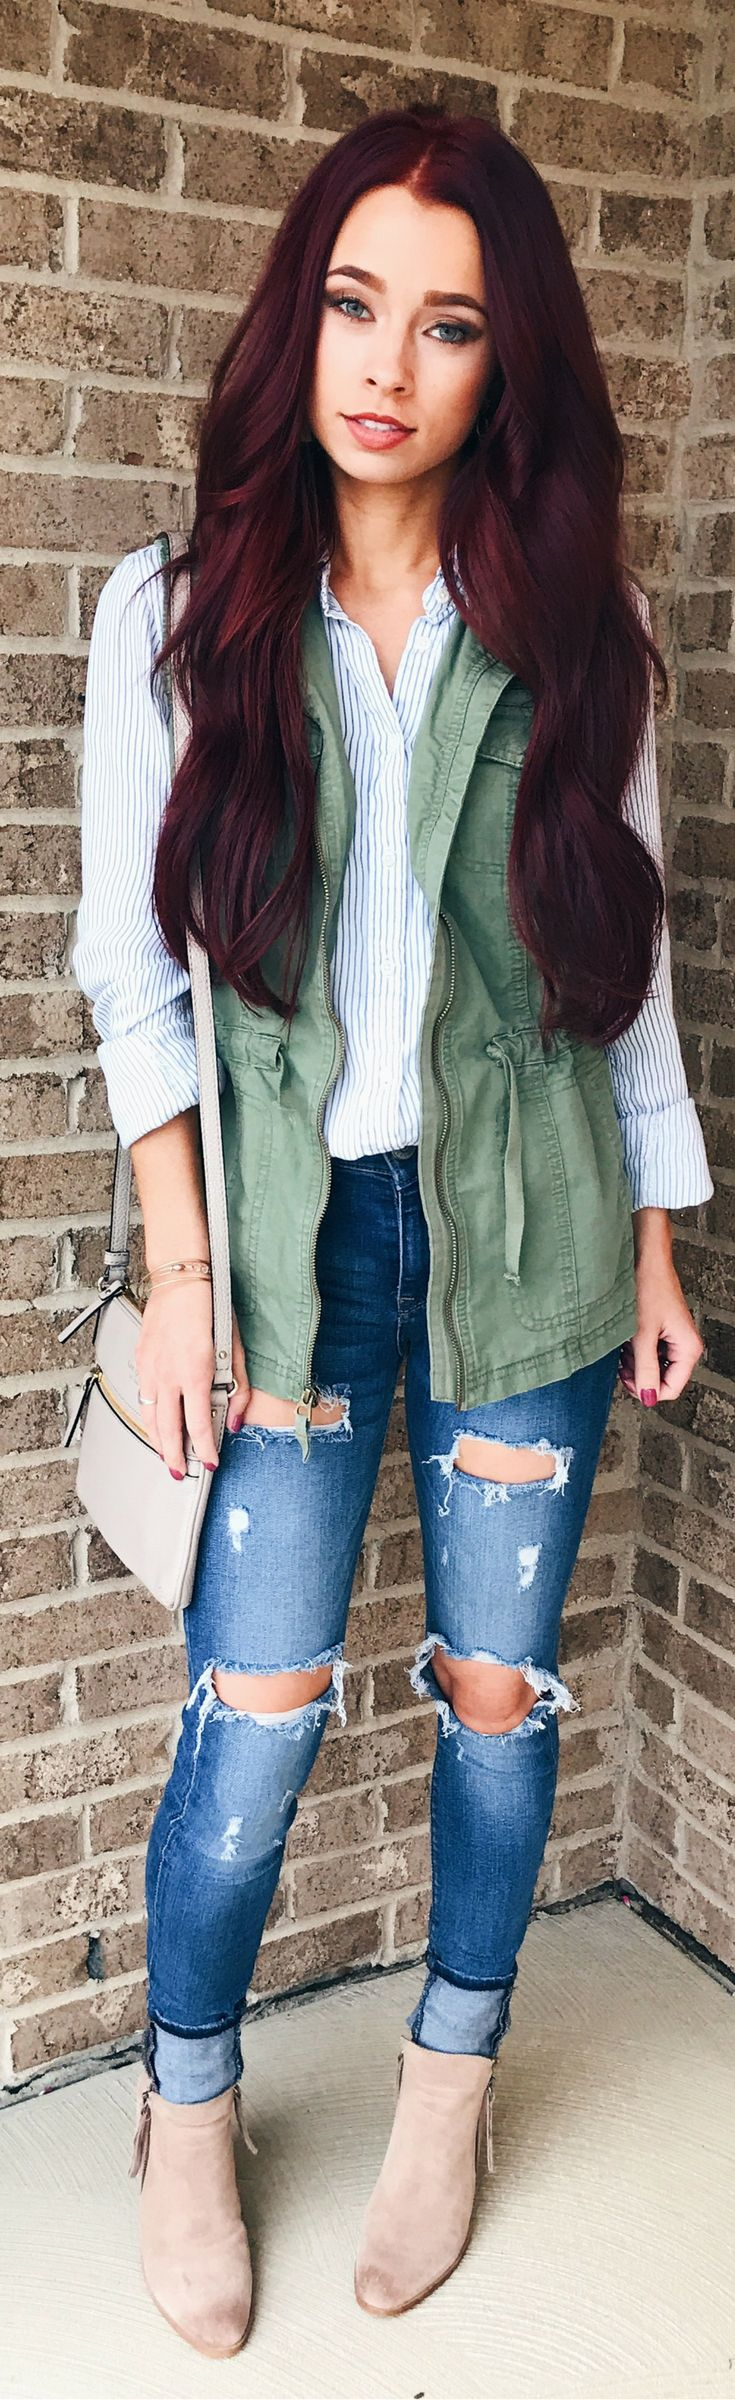 Women's Style || Fall Fashion || Target Style || Easy Fall Fashion || Liketoknow.it || Distressed Jeans || Casual Style || Women's Fashion